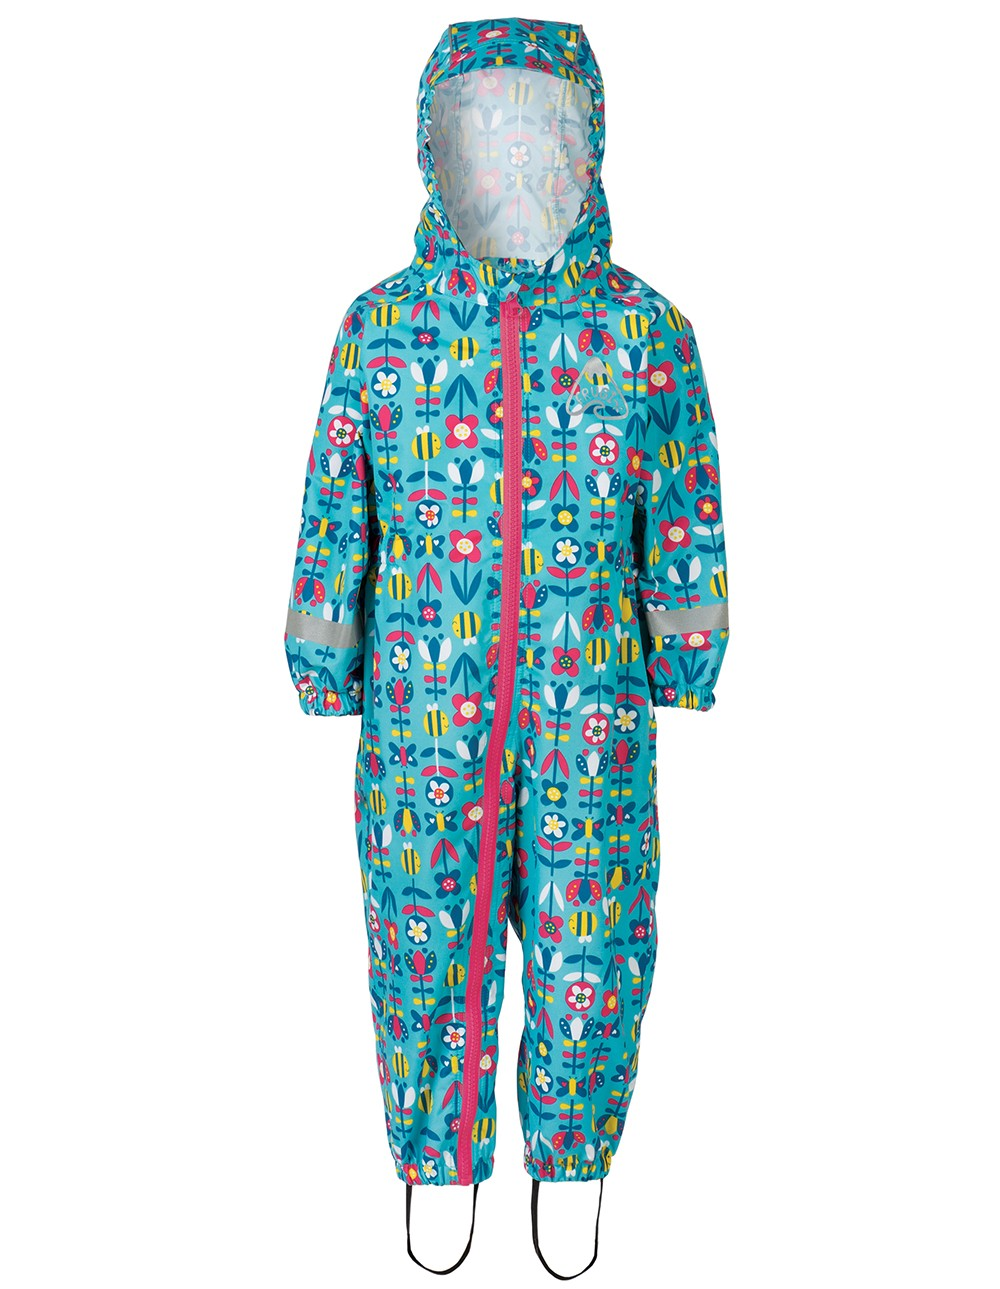 Buy Tuffo Unisex Baby Muddy Buddy Coverall: but personally I need to tuck the pantlegs into my kid's boots anyway since she's a puddle stomper so it wouldn't be an issue. This is really a minor concern though, and overall I really like this suit - it's the first time we've purchased a rainsuit rather than just going with a coat and I'm /5().